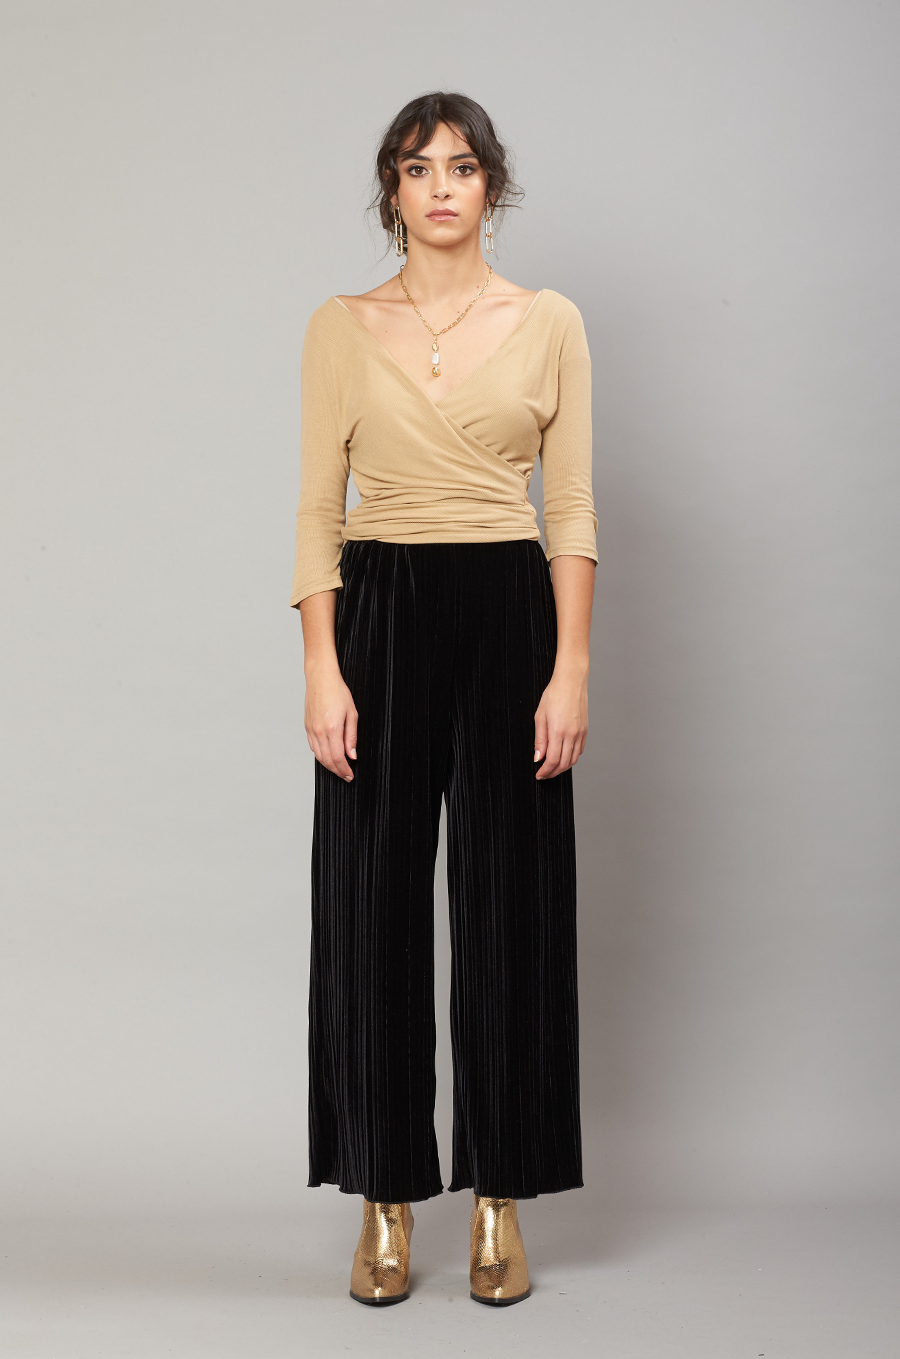 OLIVIA NZ Store online | Love Velvet Pants / Black